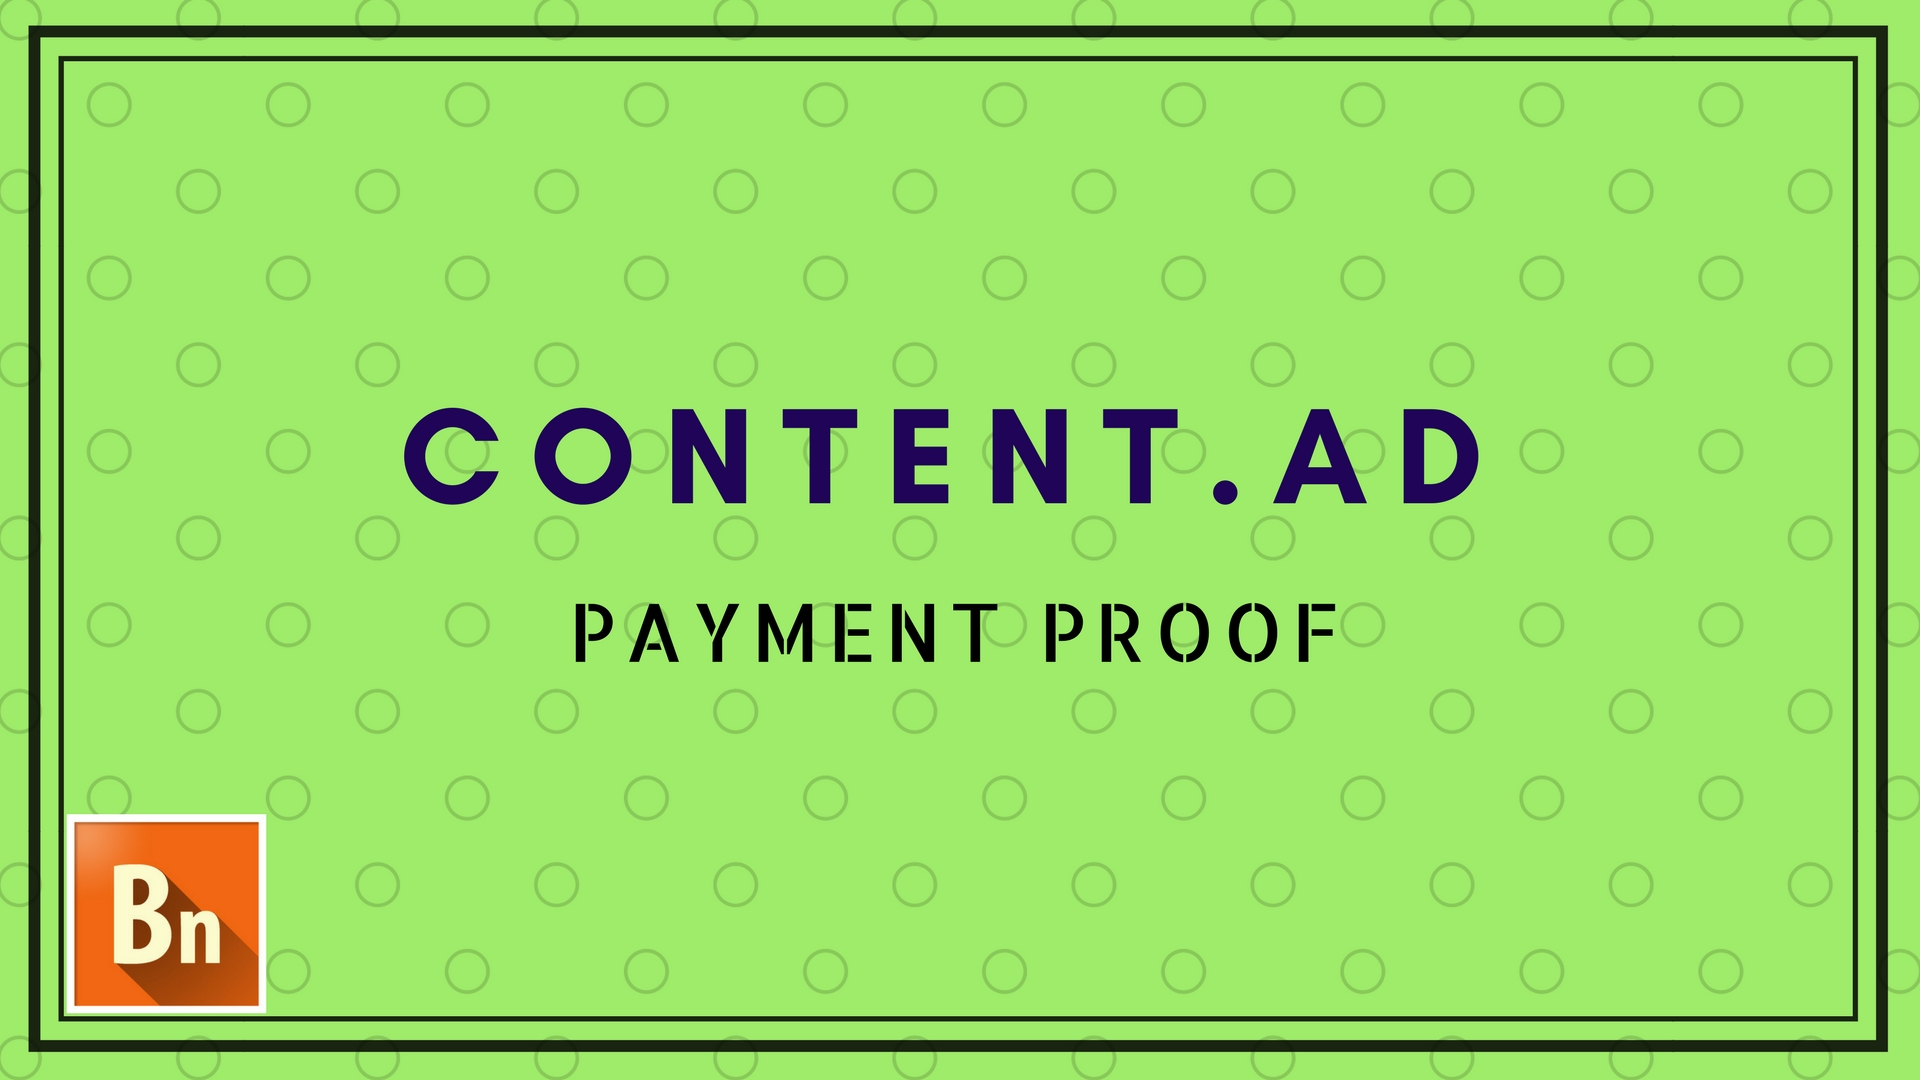 Content.Ad Payment Proof for Publishers 2019